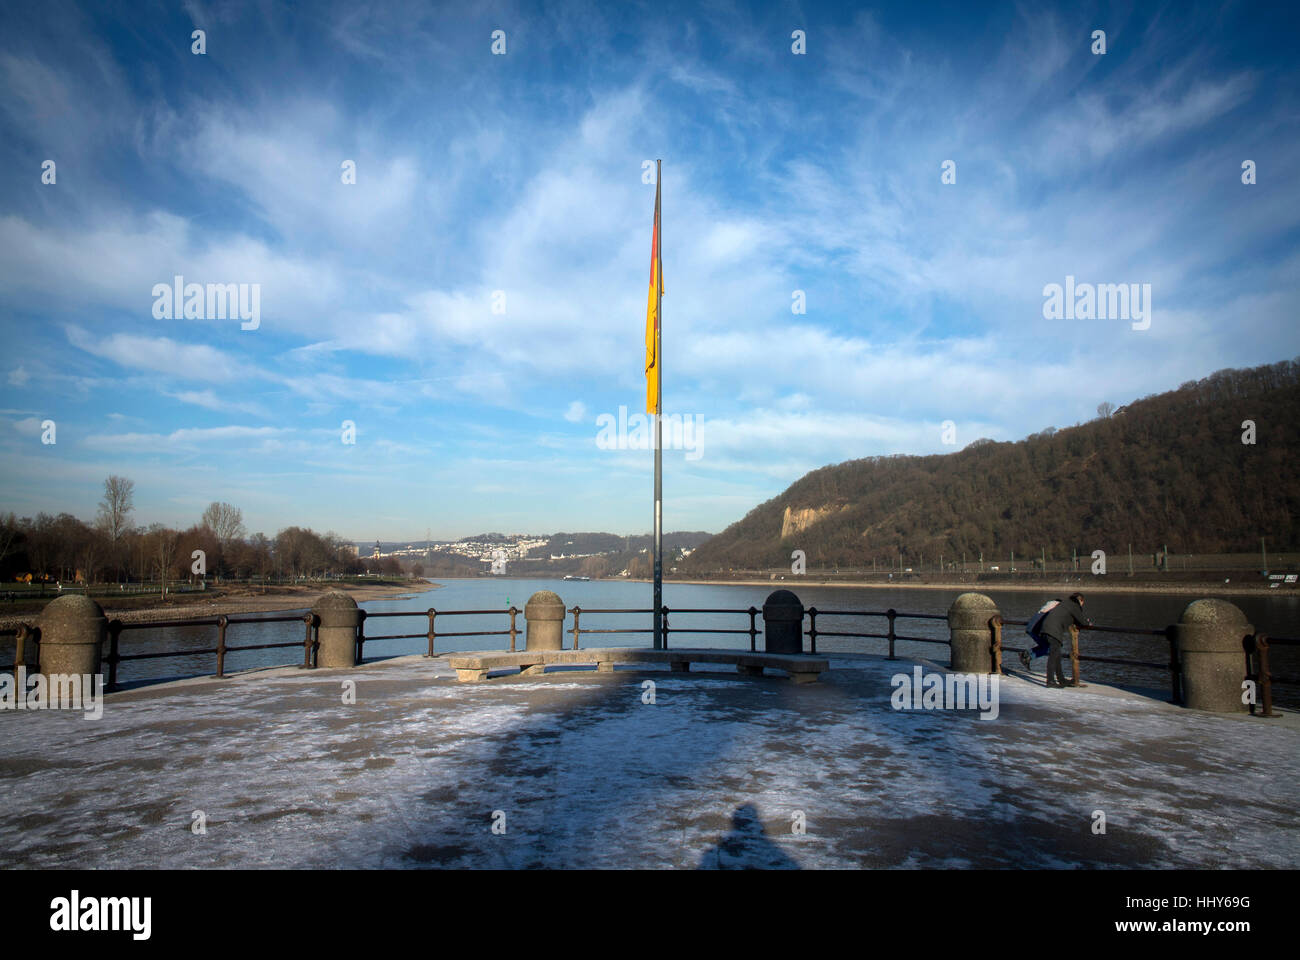 The Deutsches Eck (German Corner) where the rivers Rhein and Mosel meet in Koblenz, Germany. - Stock Image